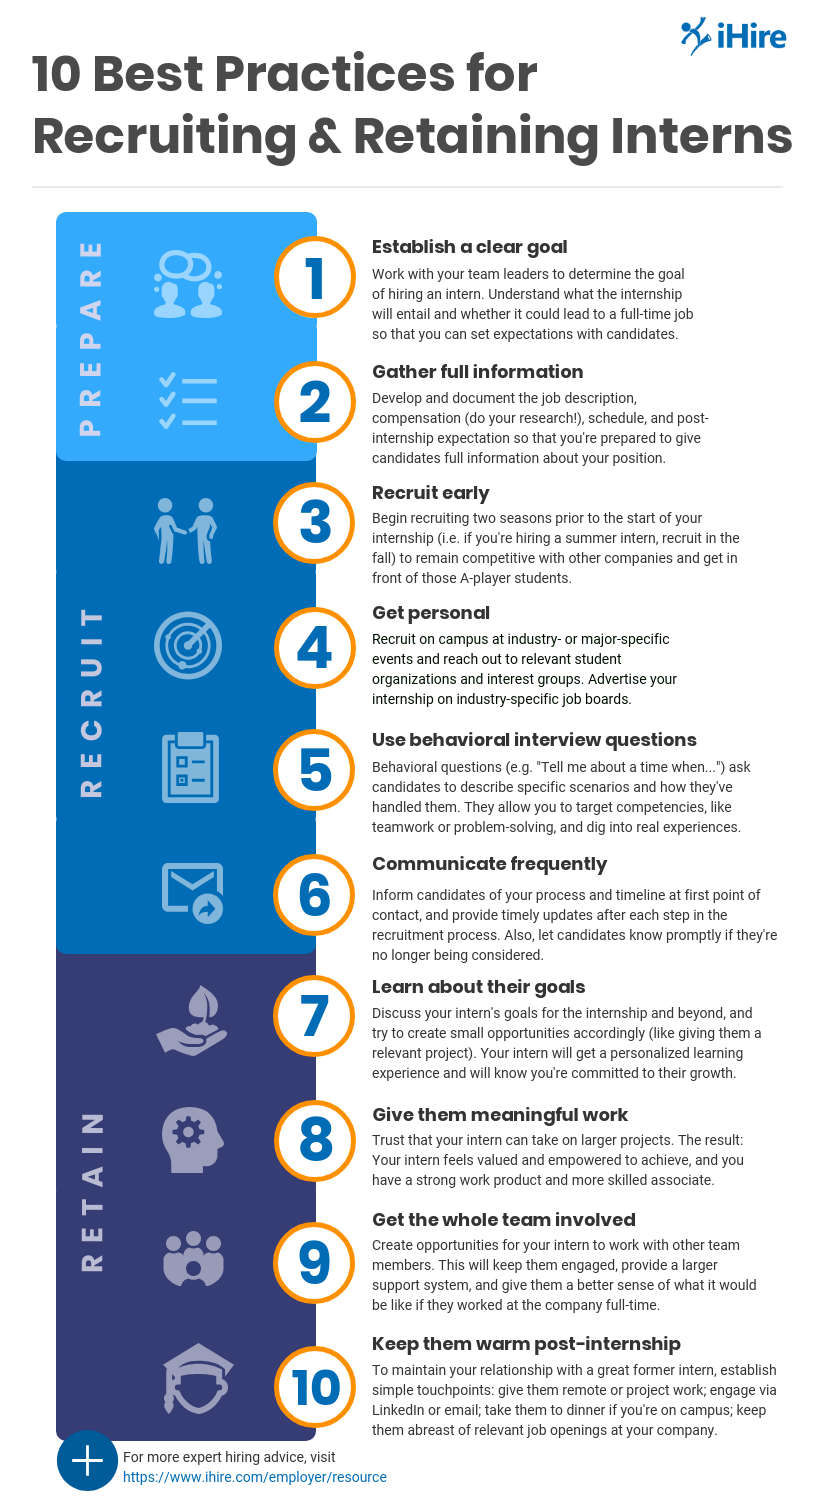 Infographic: 10 Best Practices for Recruiting and Retaining Interns